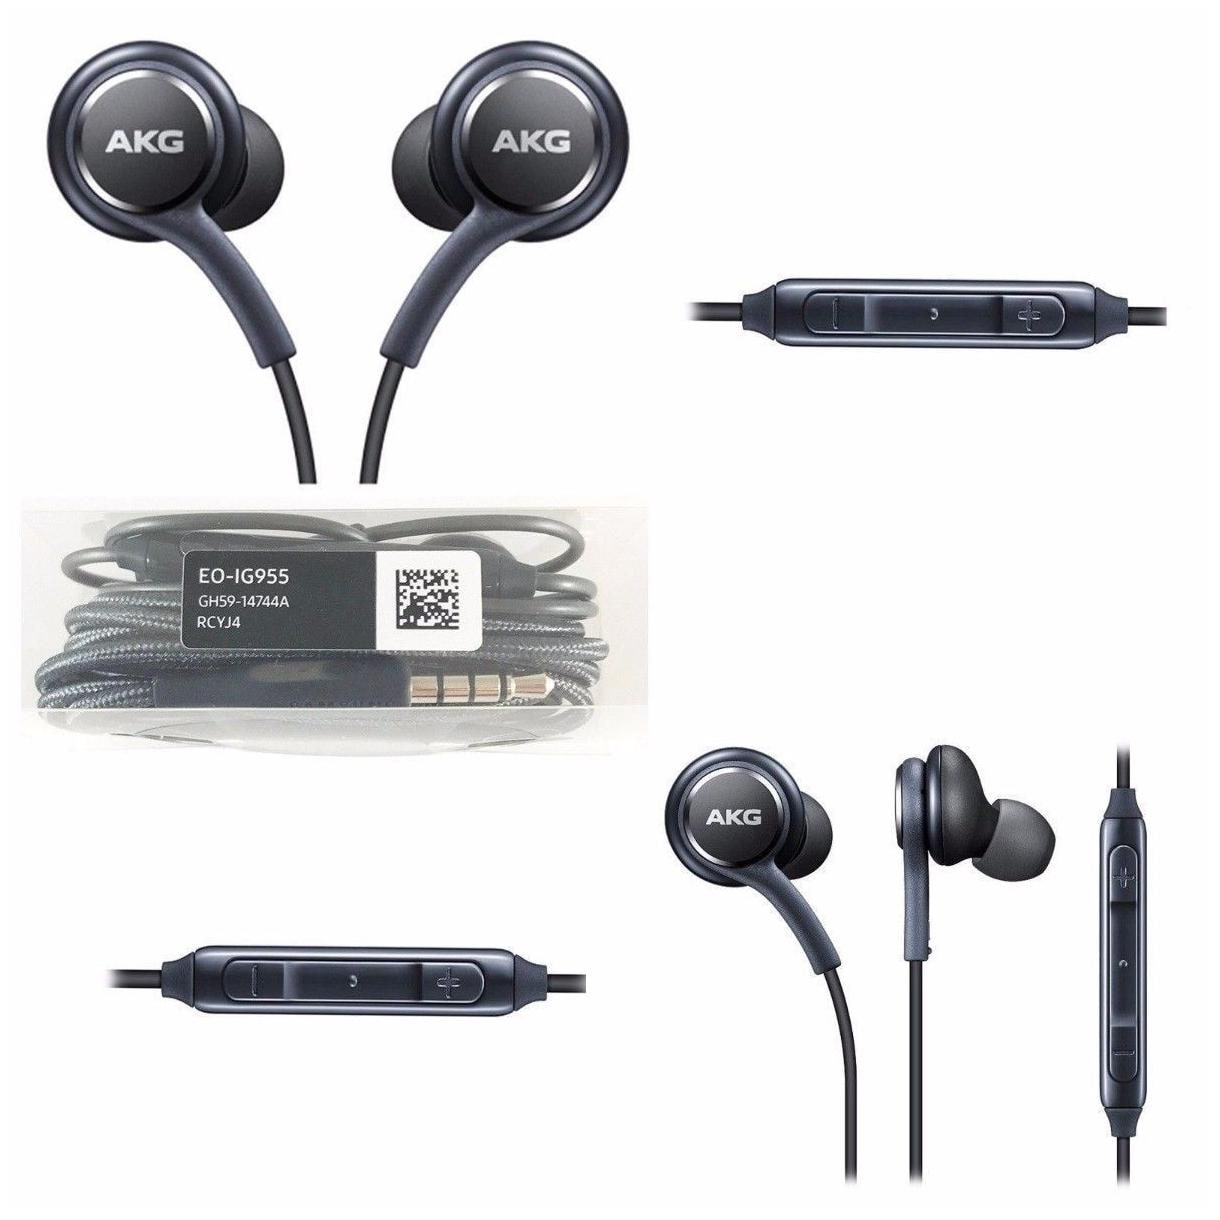 ONE94STORE AKG High Quality Wired Earphone